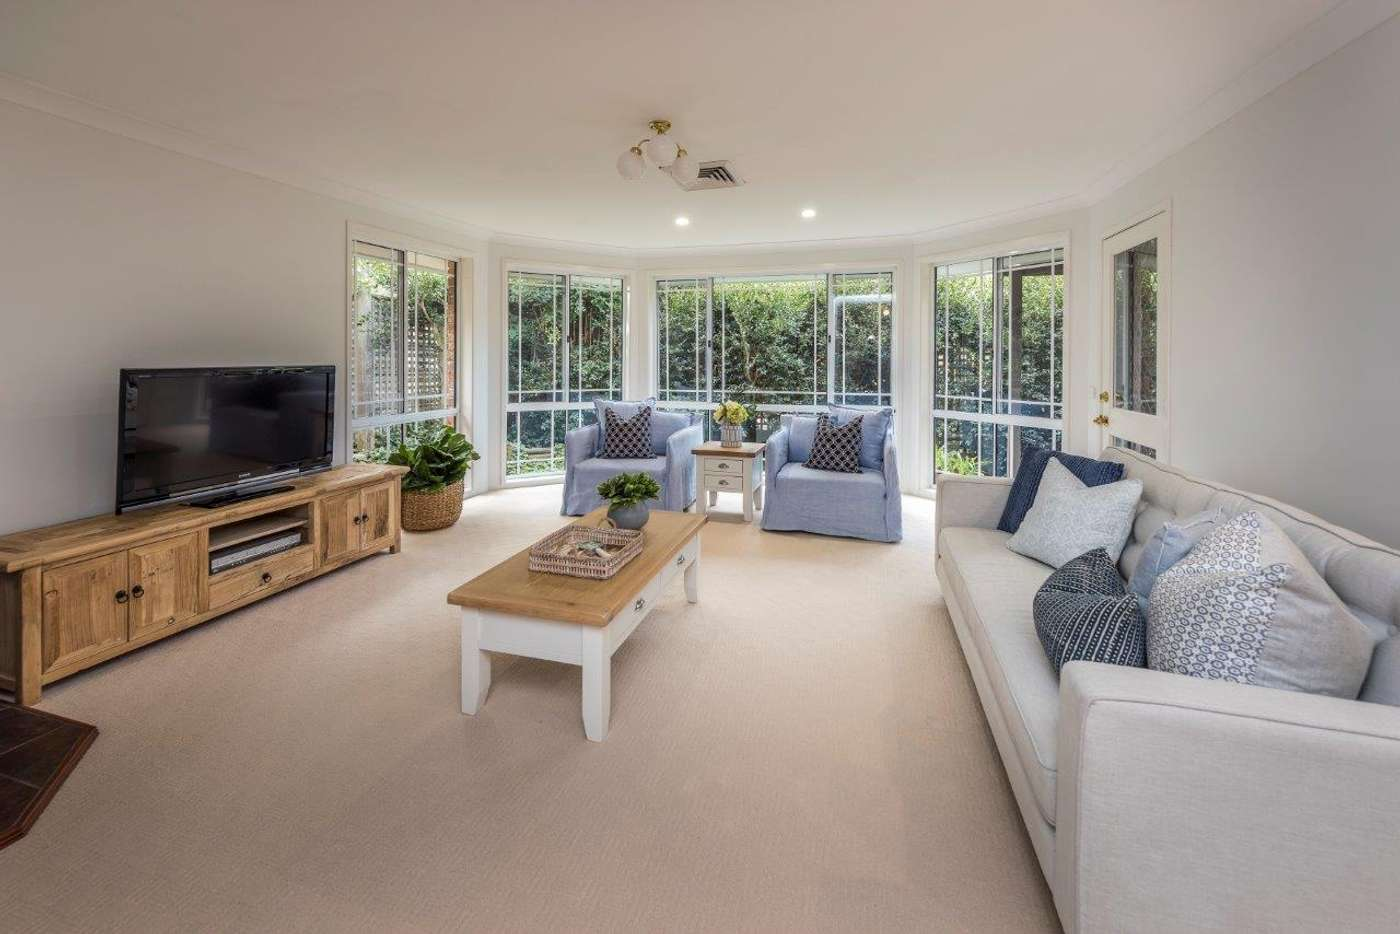 Fifth view of Homely house listing, 7A Greyleaves Avenue, Burradoo NSW 2576